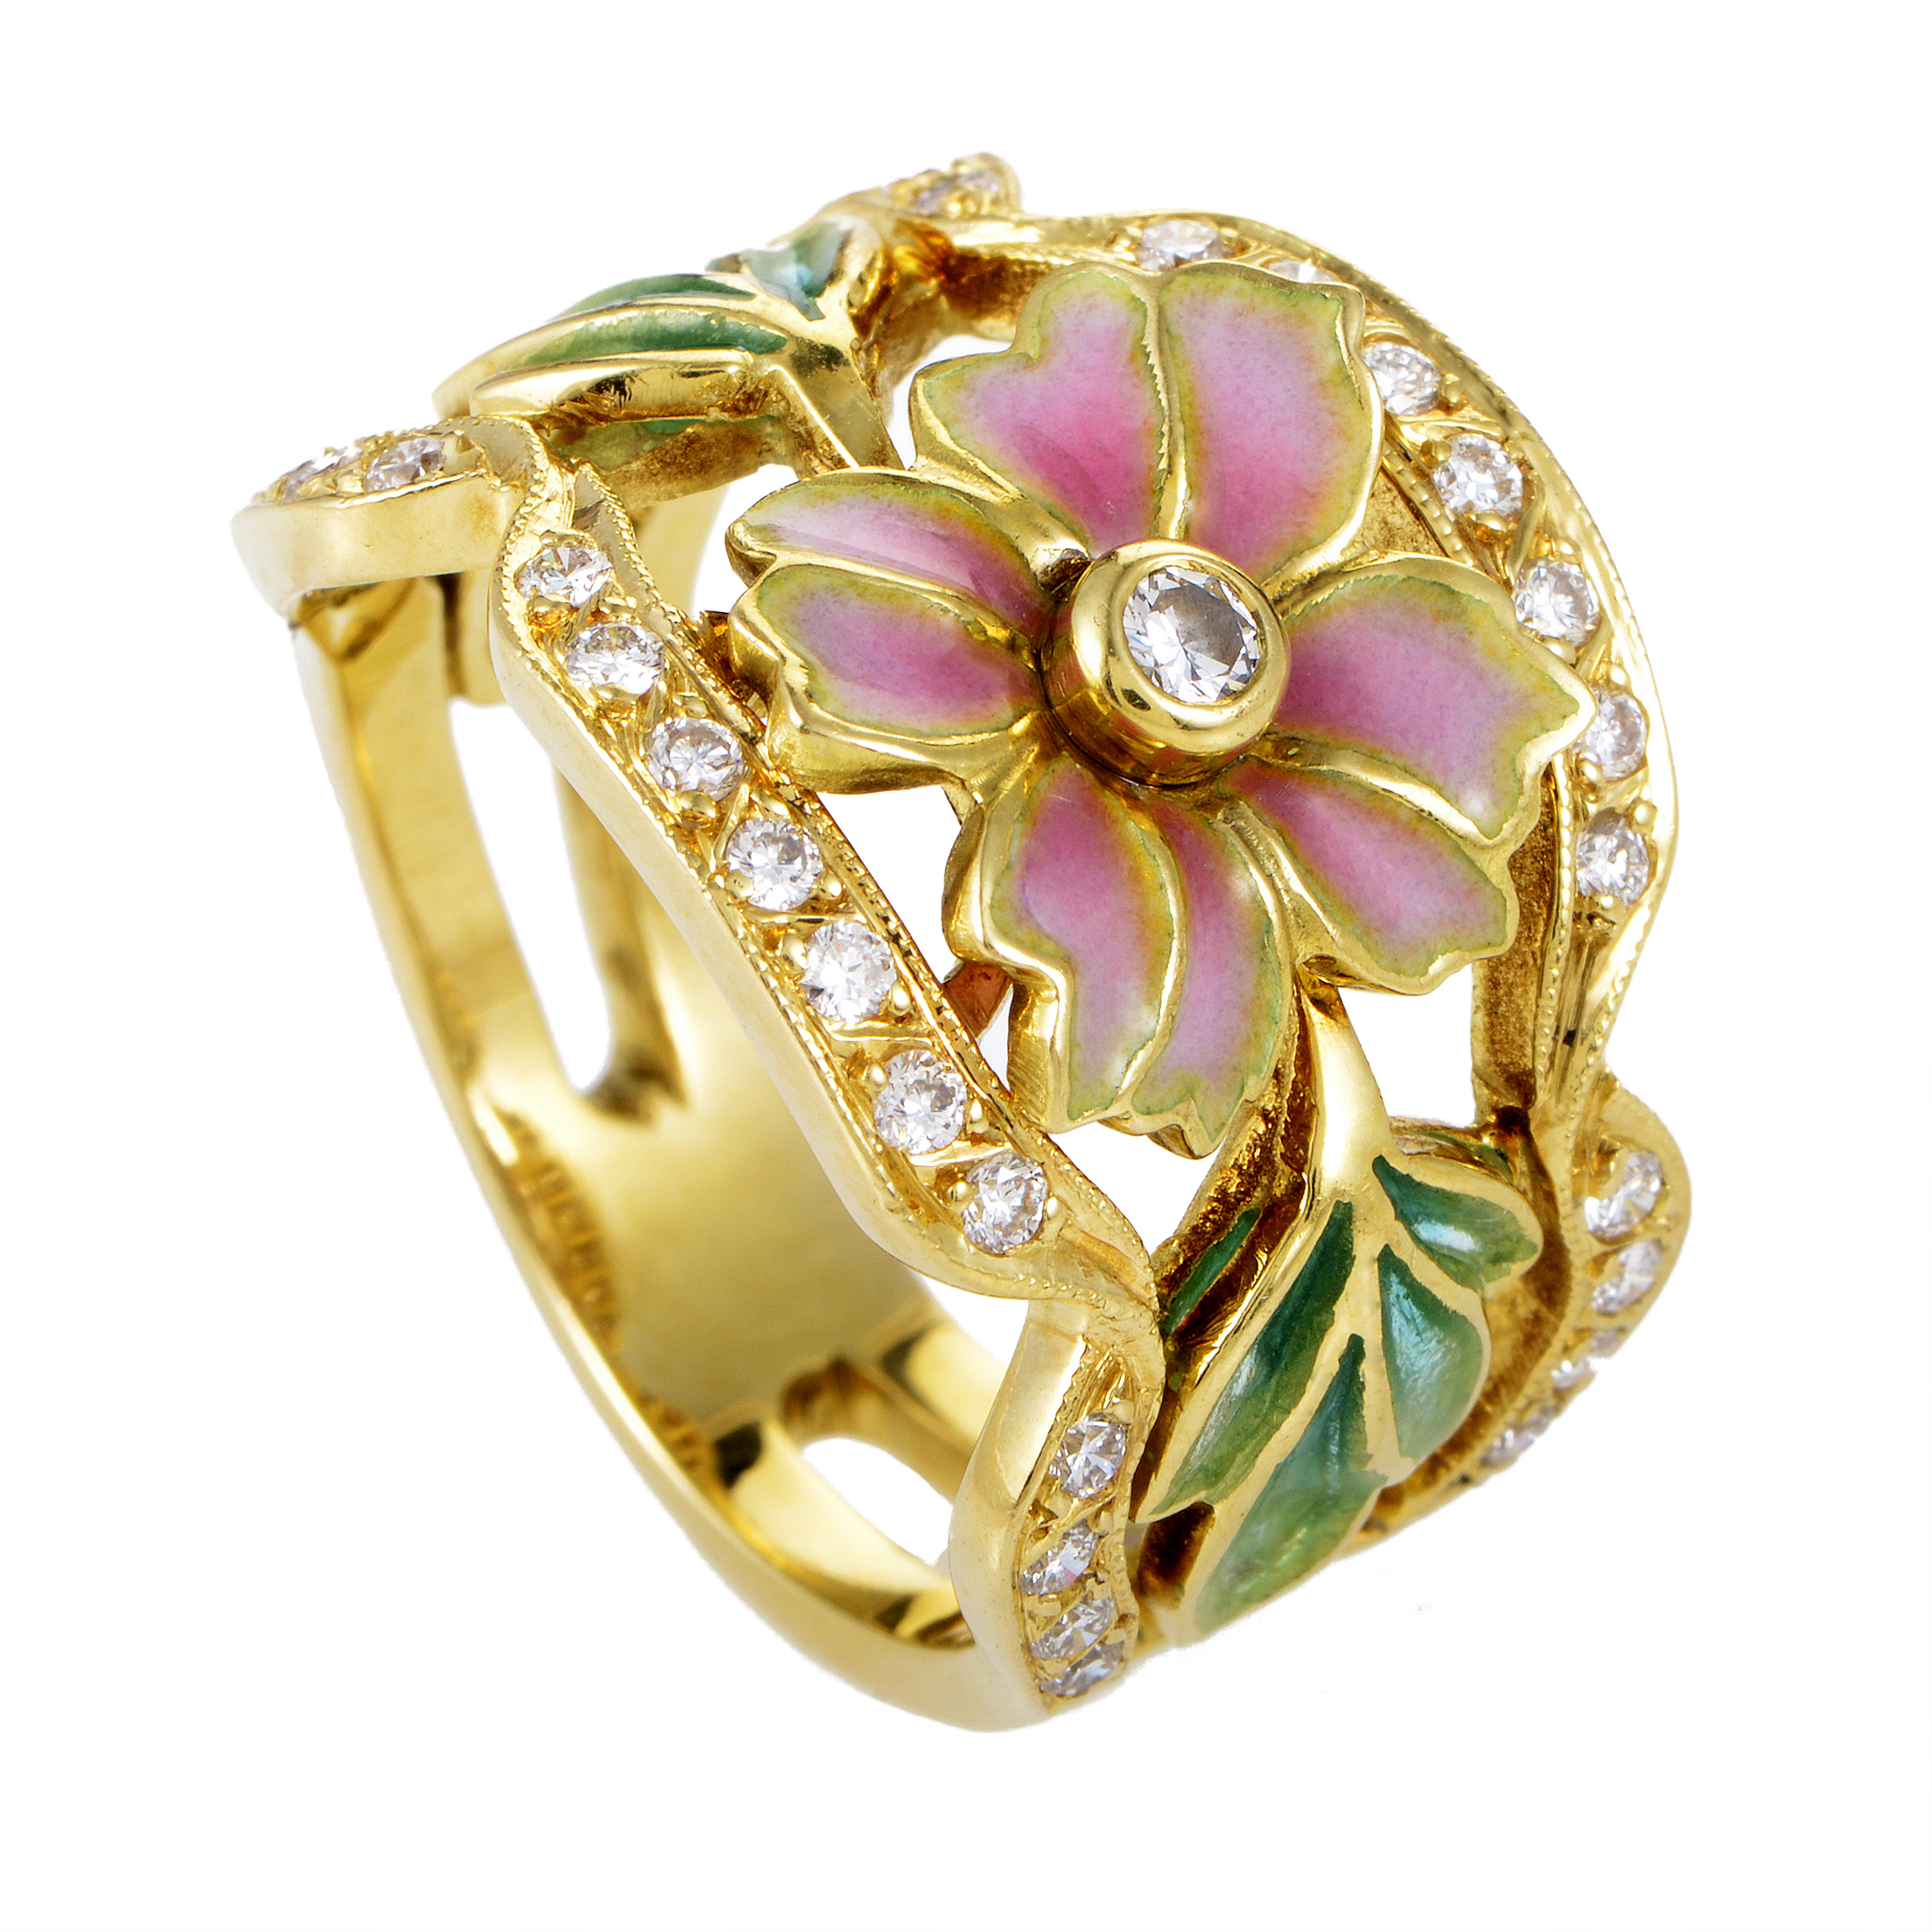 Masriera Women's Enameled 18K Yellow Gold & Diamond Flower Band Ring